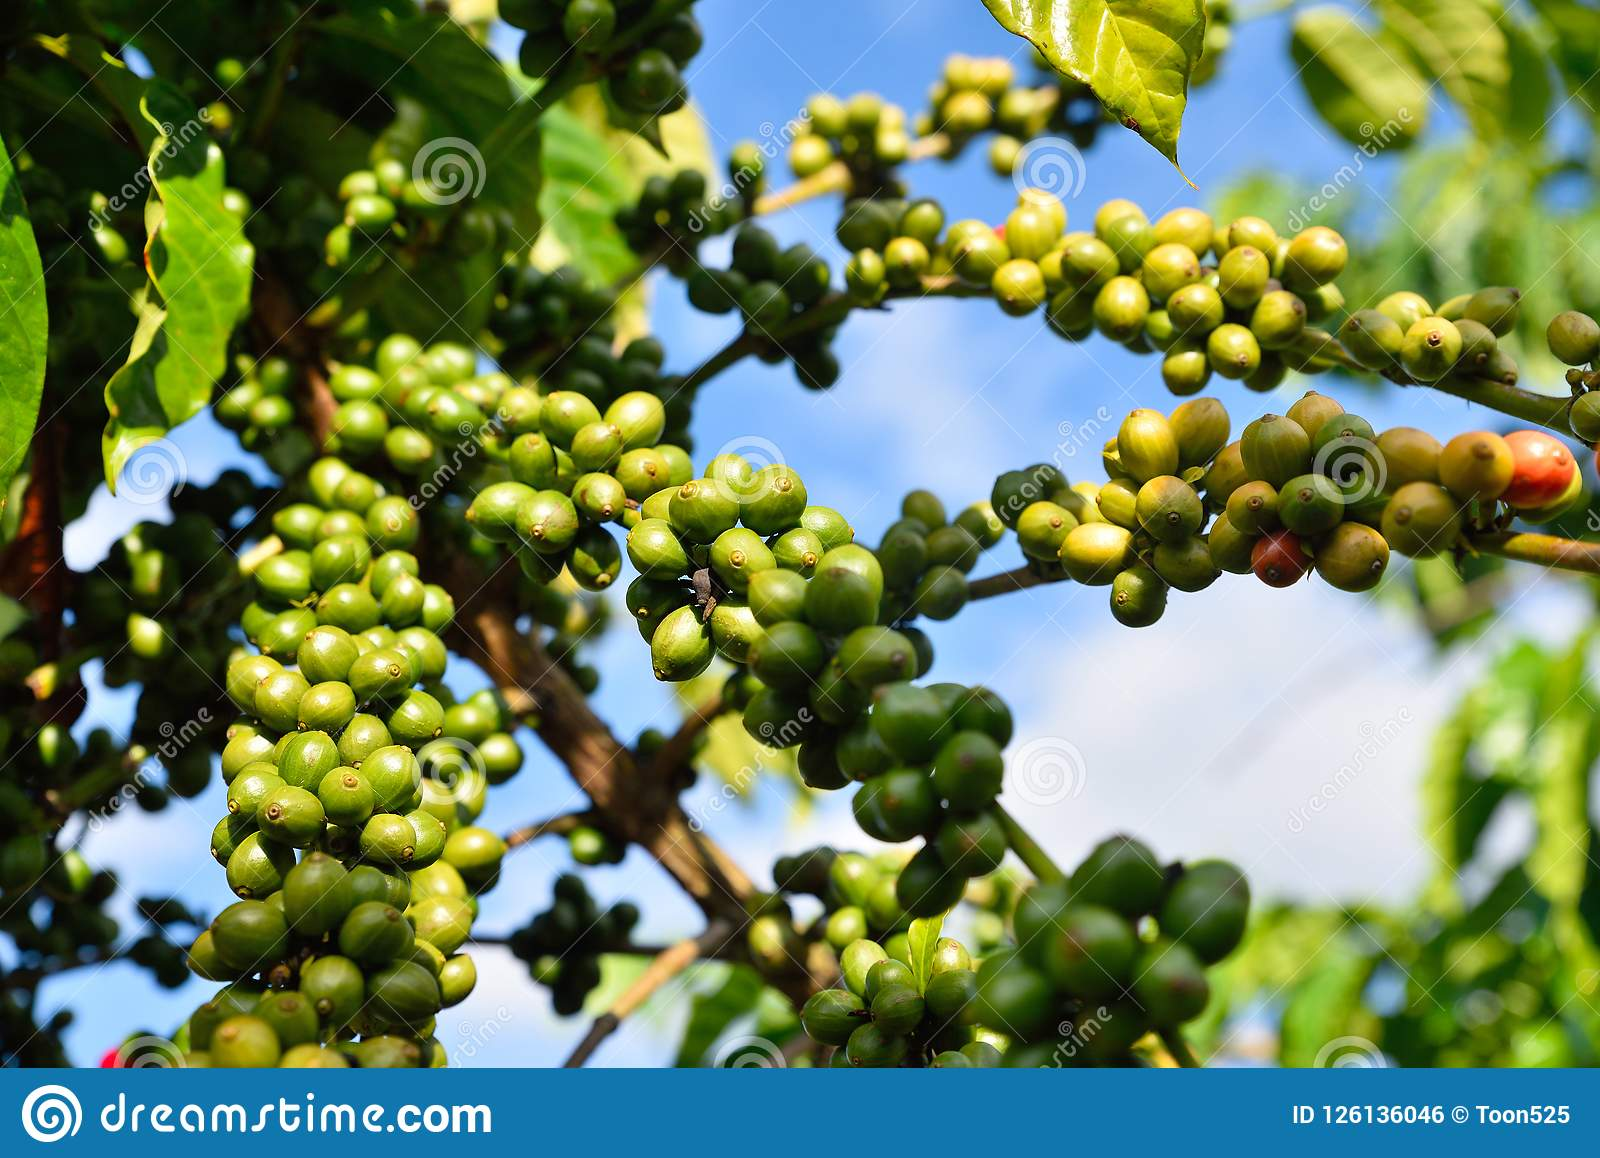 Green Coffee Beans On Tree Stock Photo Image Of Blur 126136046